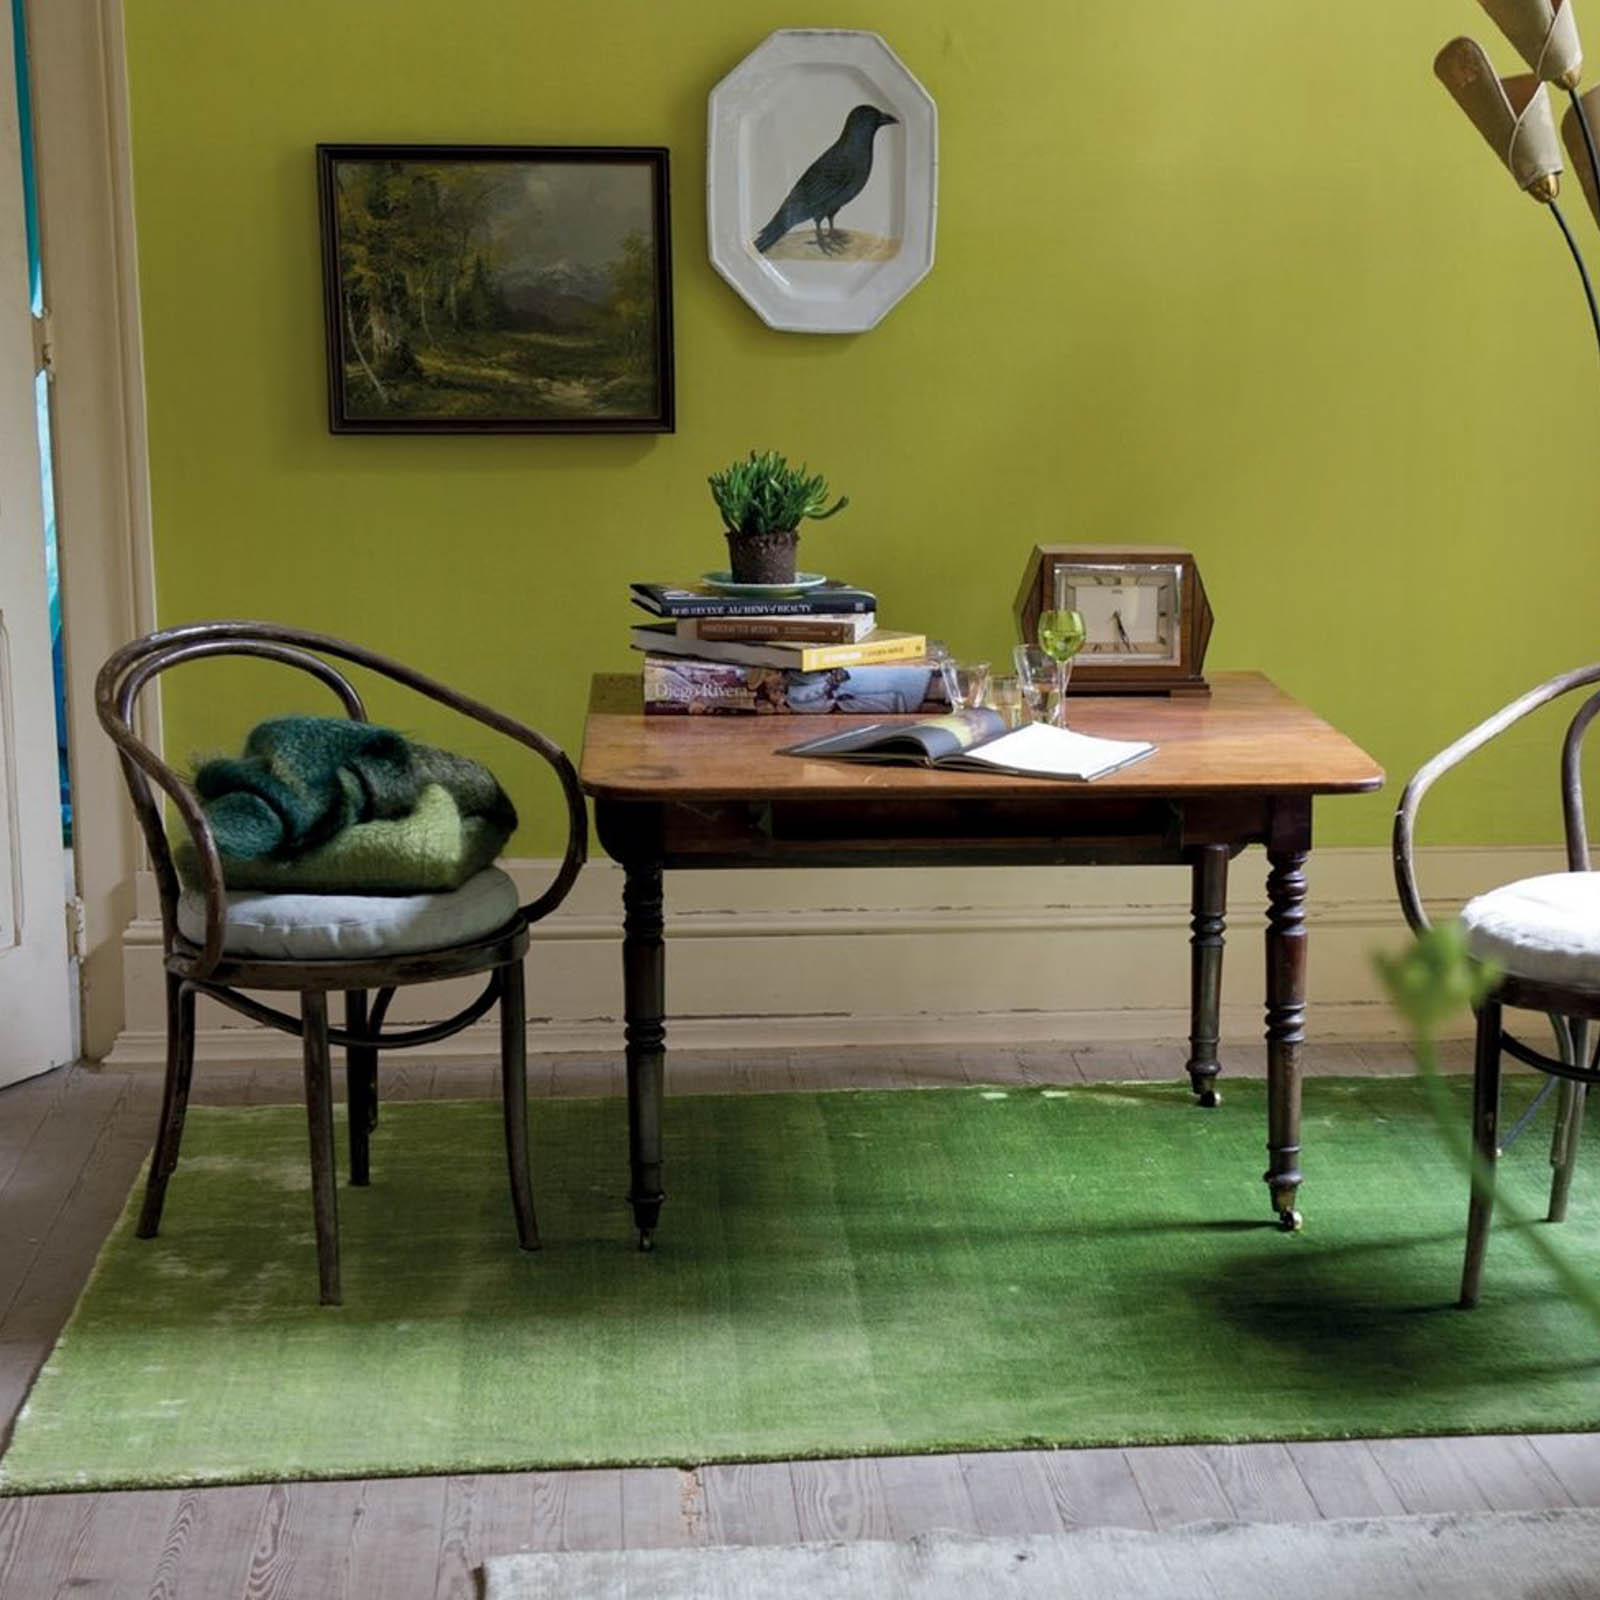 Eberson Grass Rug by Designers Guild